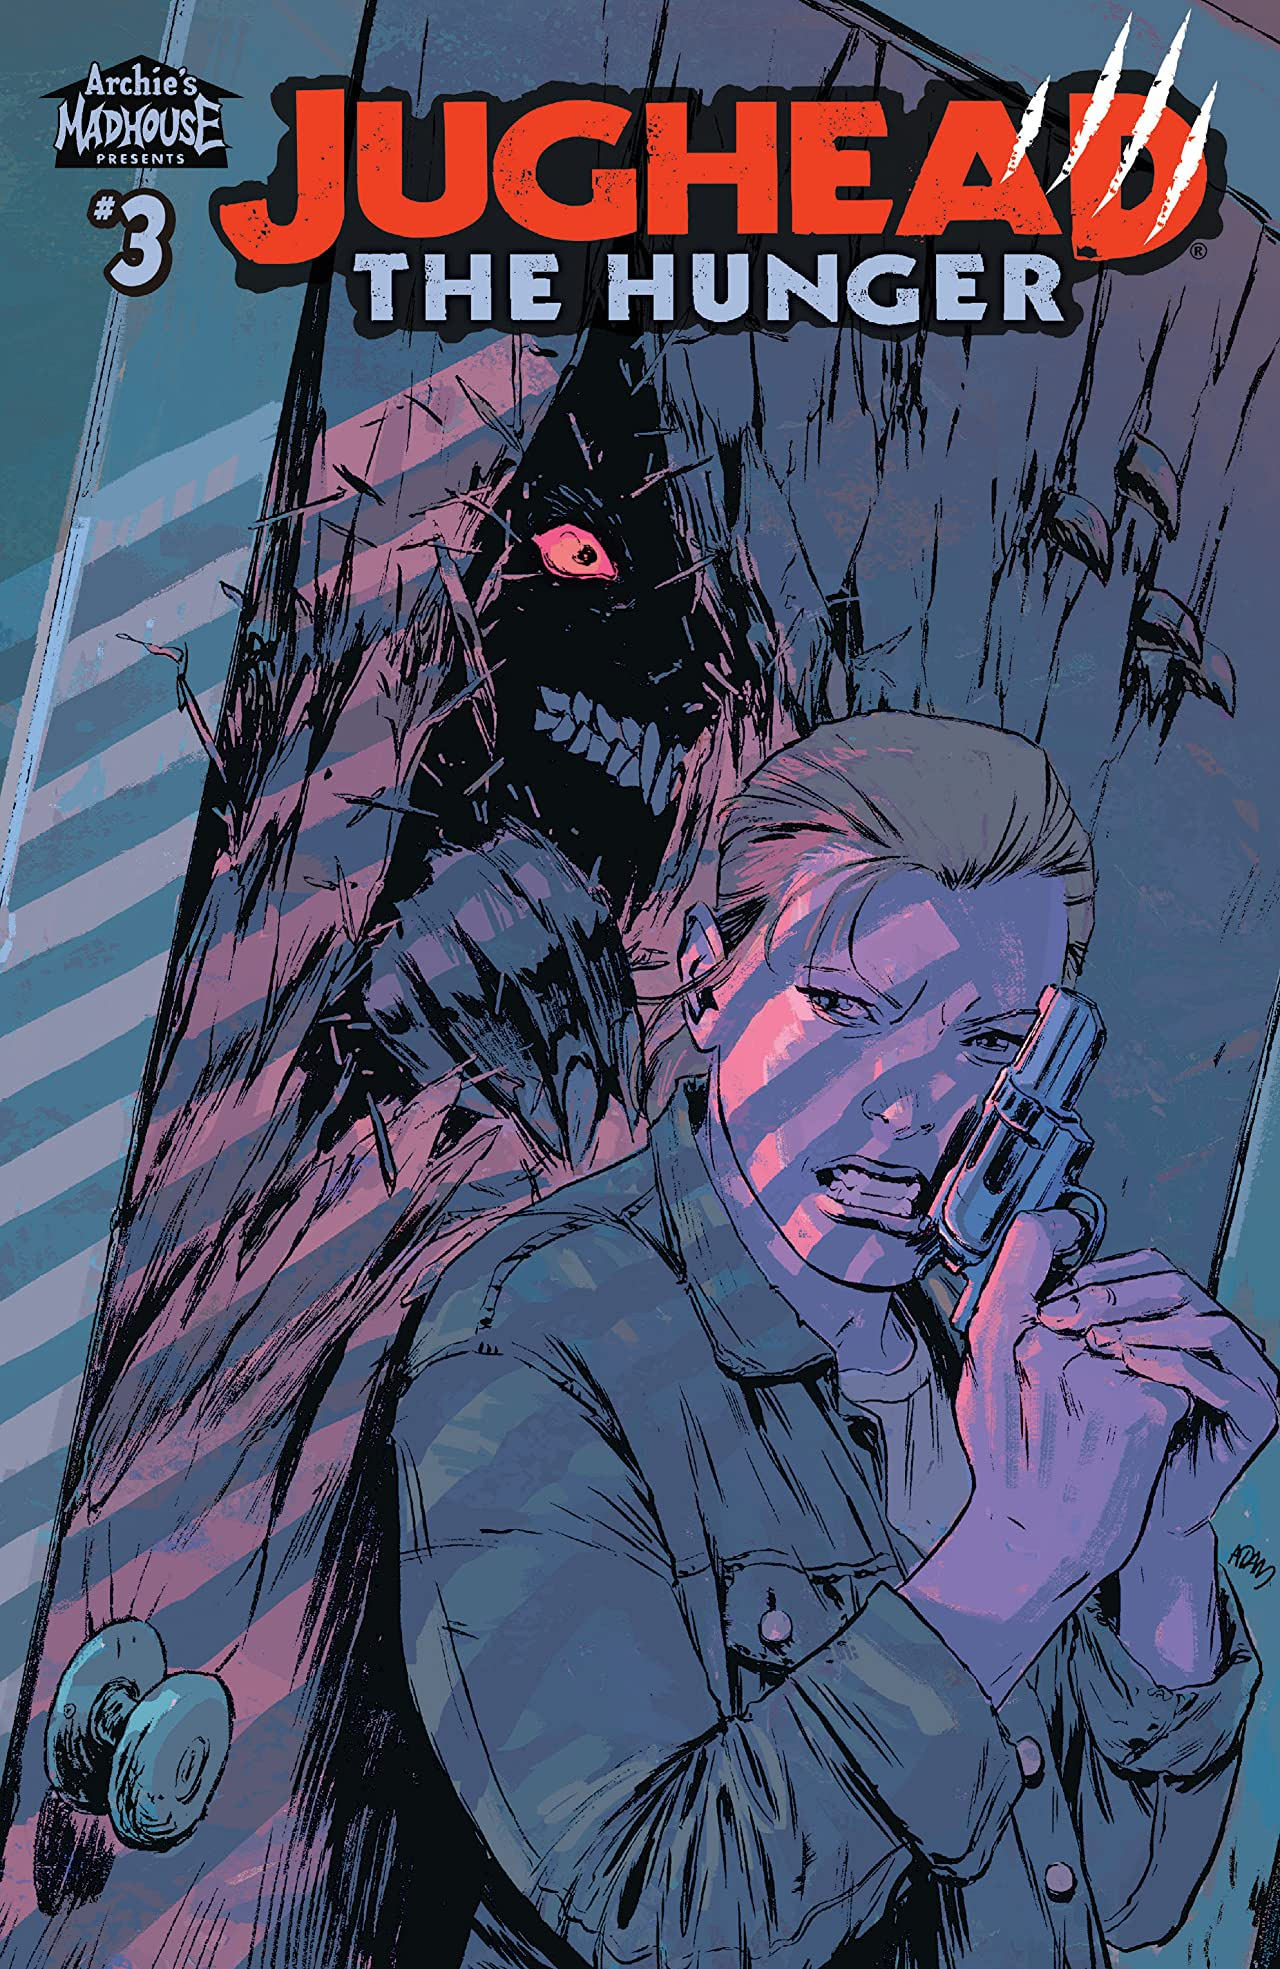 Jughead: The Hunger #3